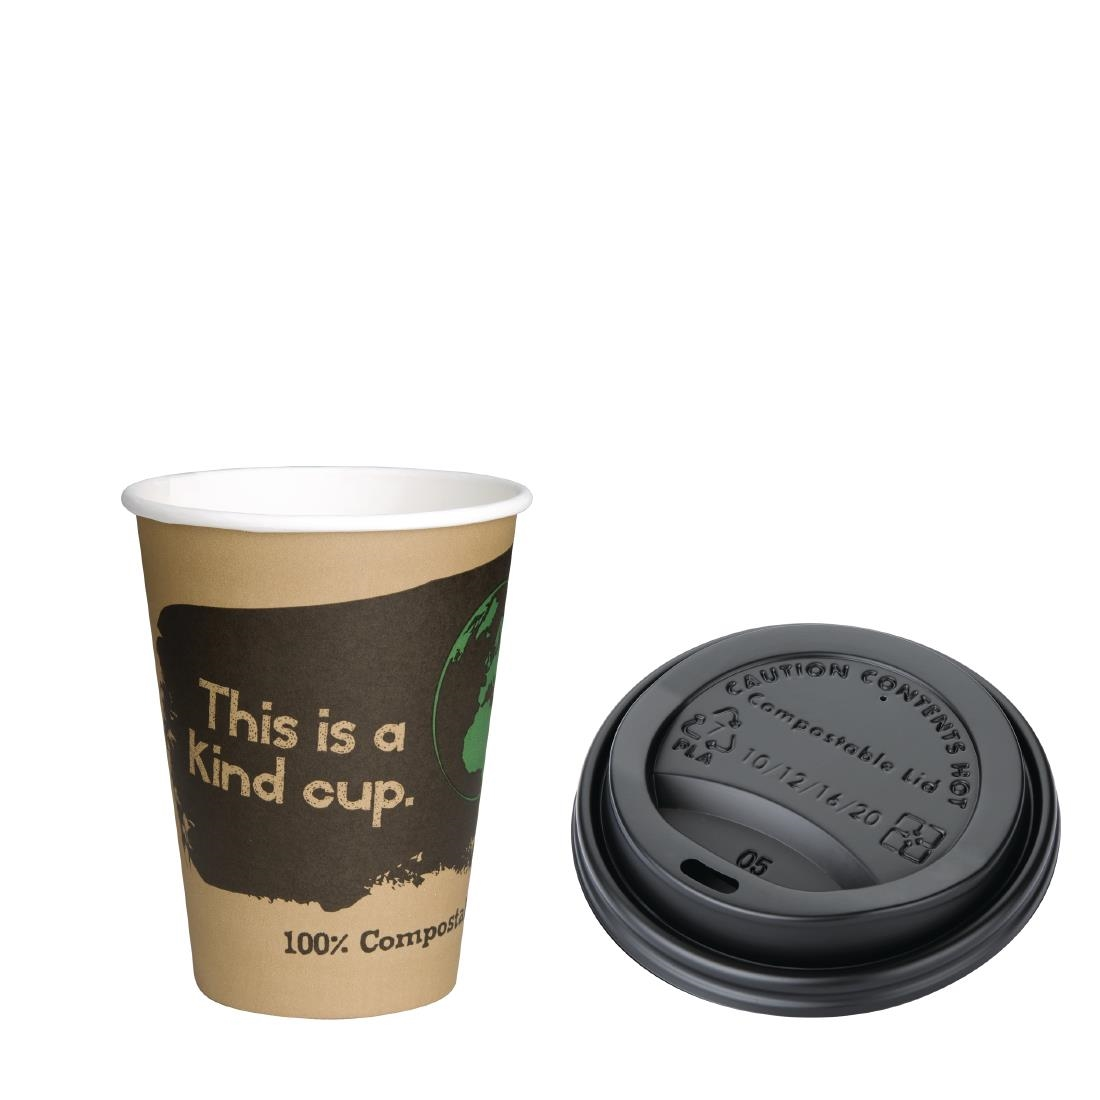 Image of Fiesta Green 12oz Compostable Hot Cups and Lids Bundle (Pack of 1000) Pack of 1000